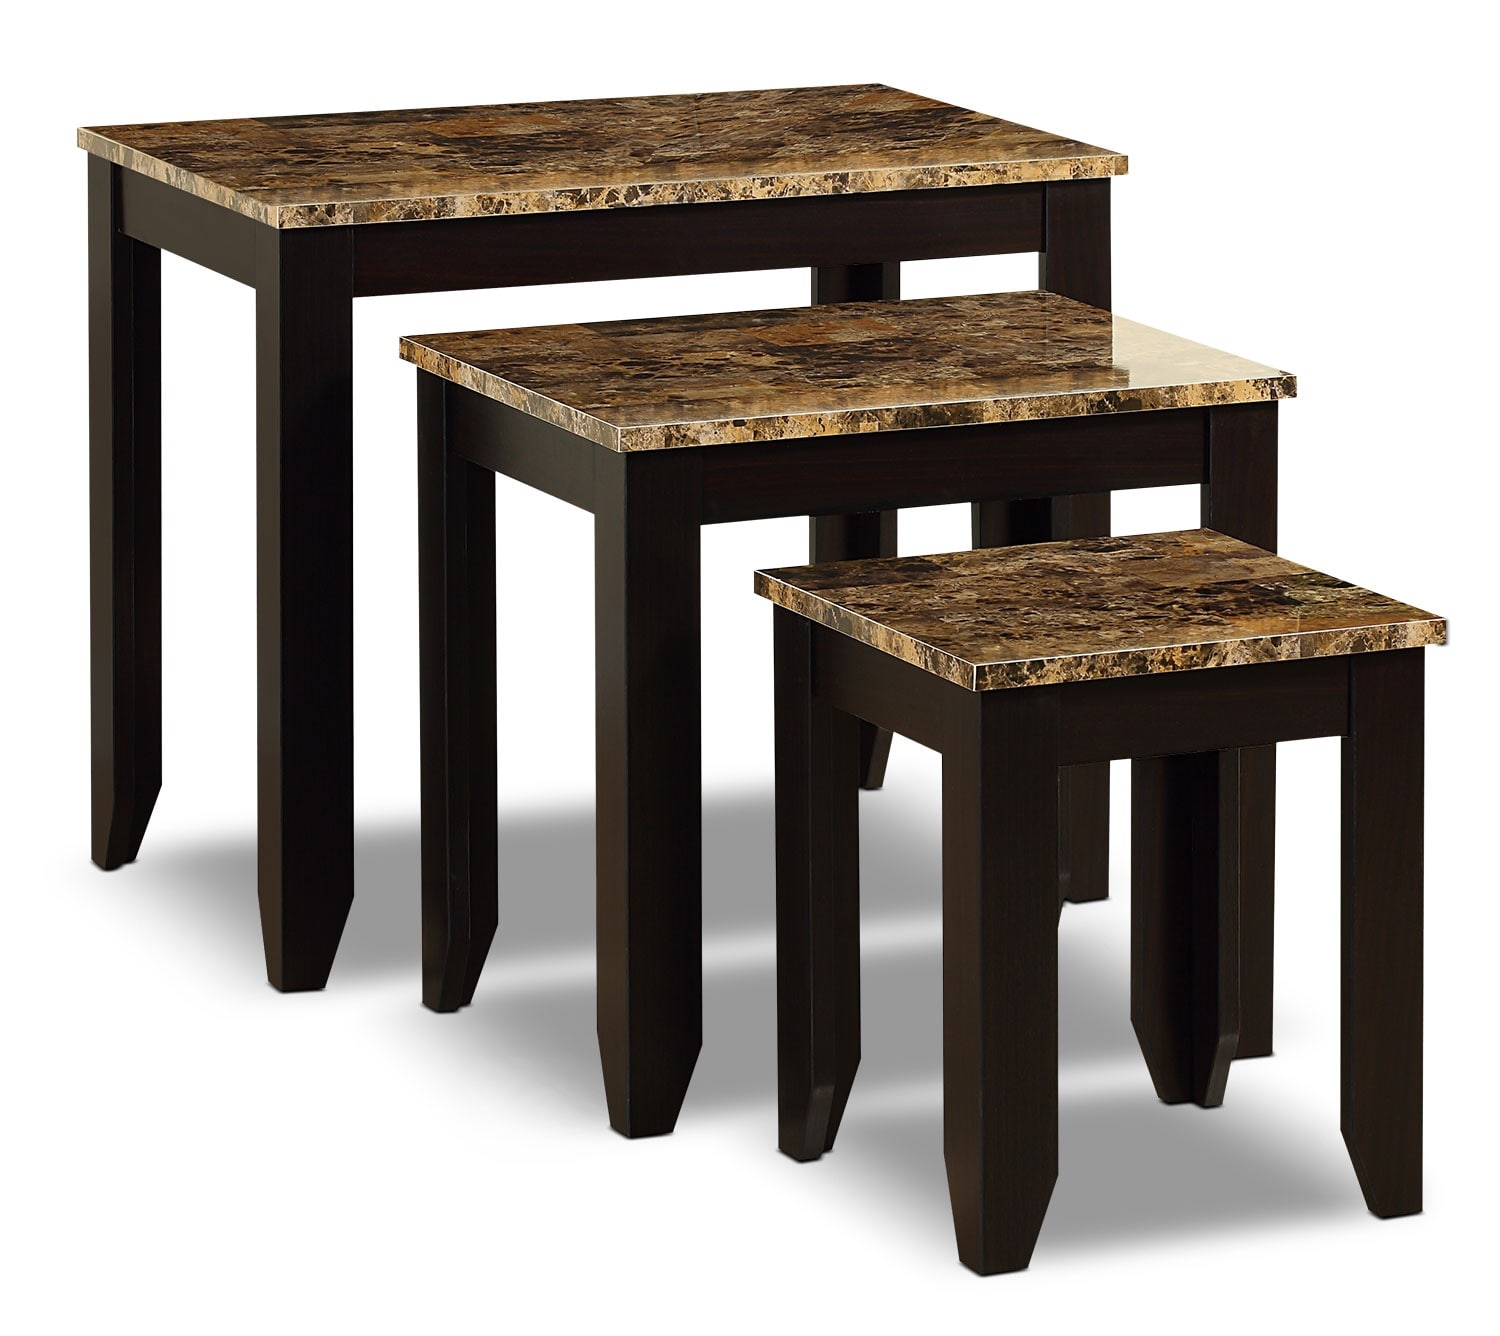 Roma 3 Piece Nesting Table Package The Brick